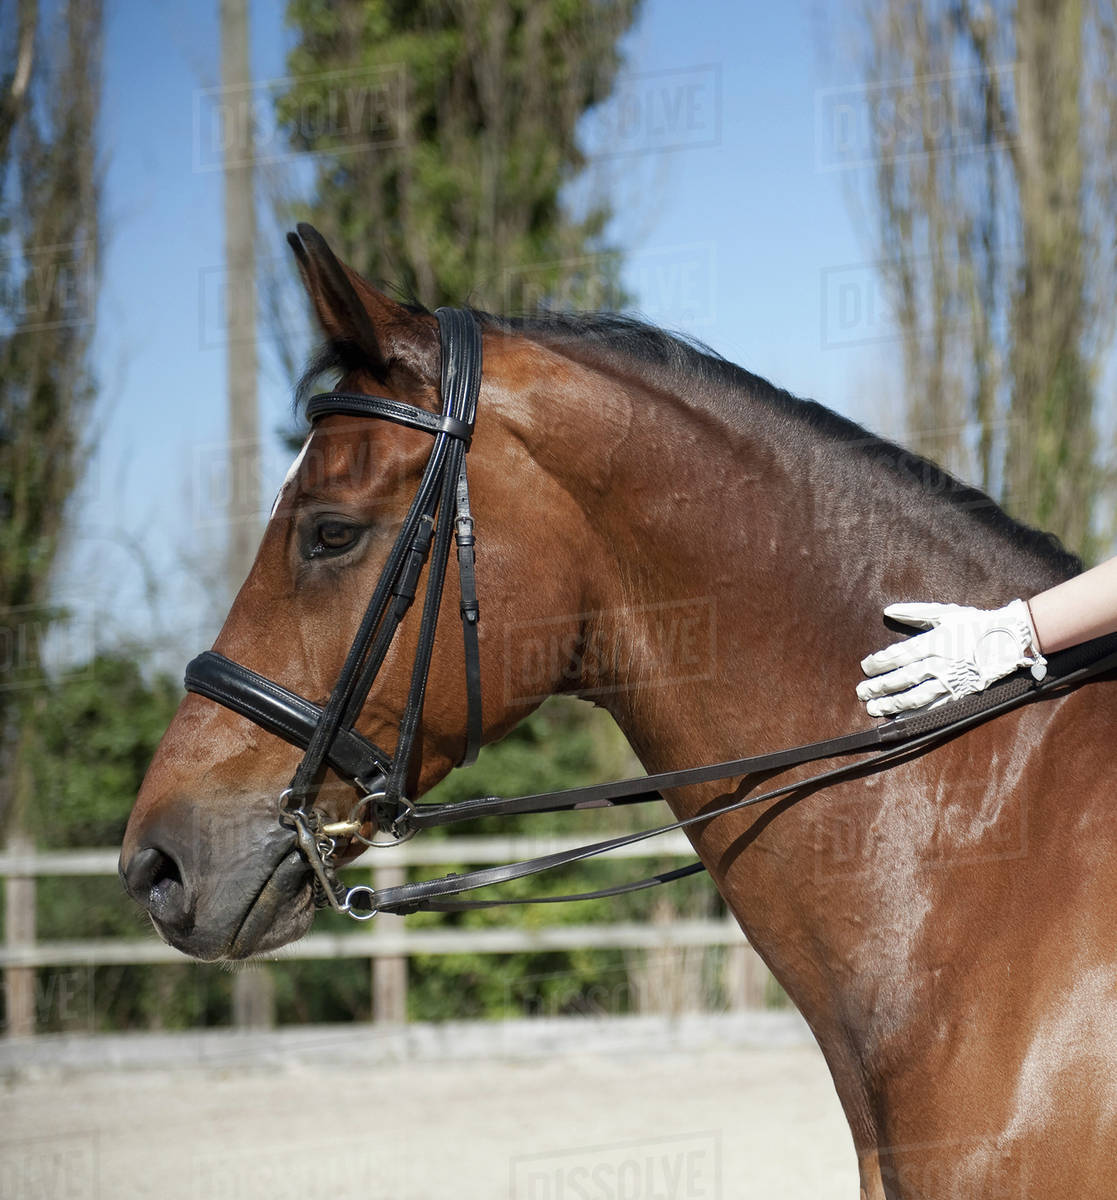 Side View A Bay Horse With A Bridle A Rider S Gloved Hand On The Glossy Brown Hide Of The Neck Stock Photo Dissolve